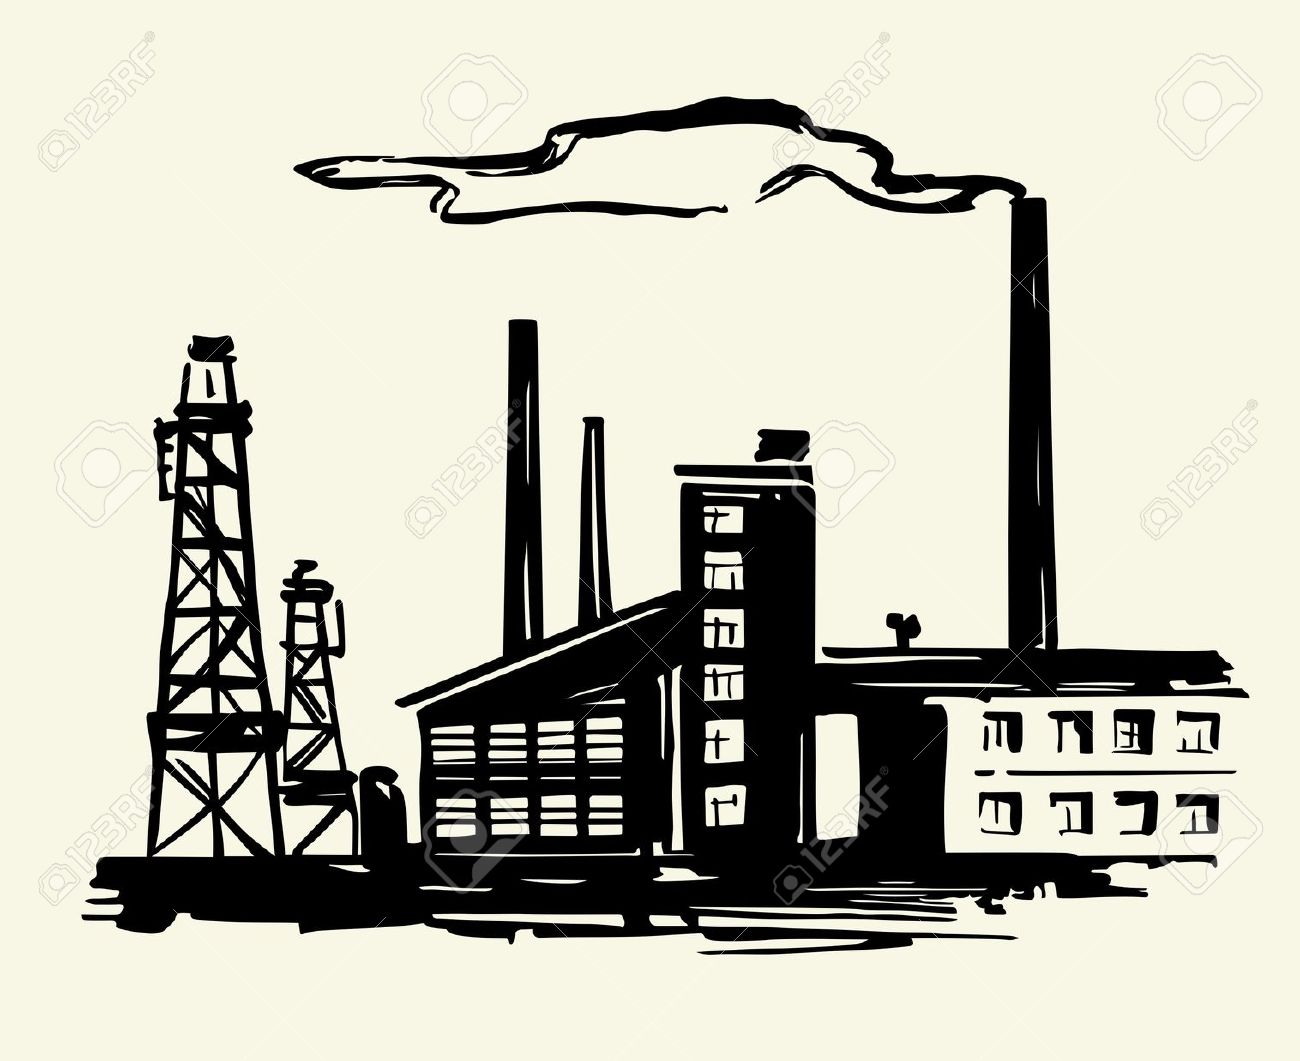 Industry clipart transparent stock Industries clipart 2 » Clipart Station transparent stock